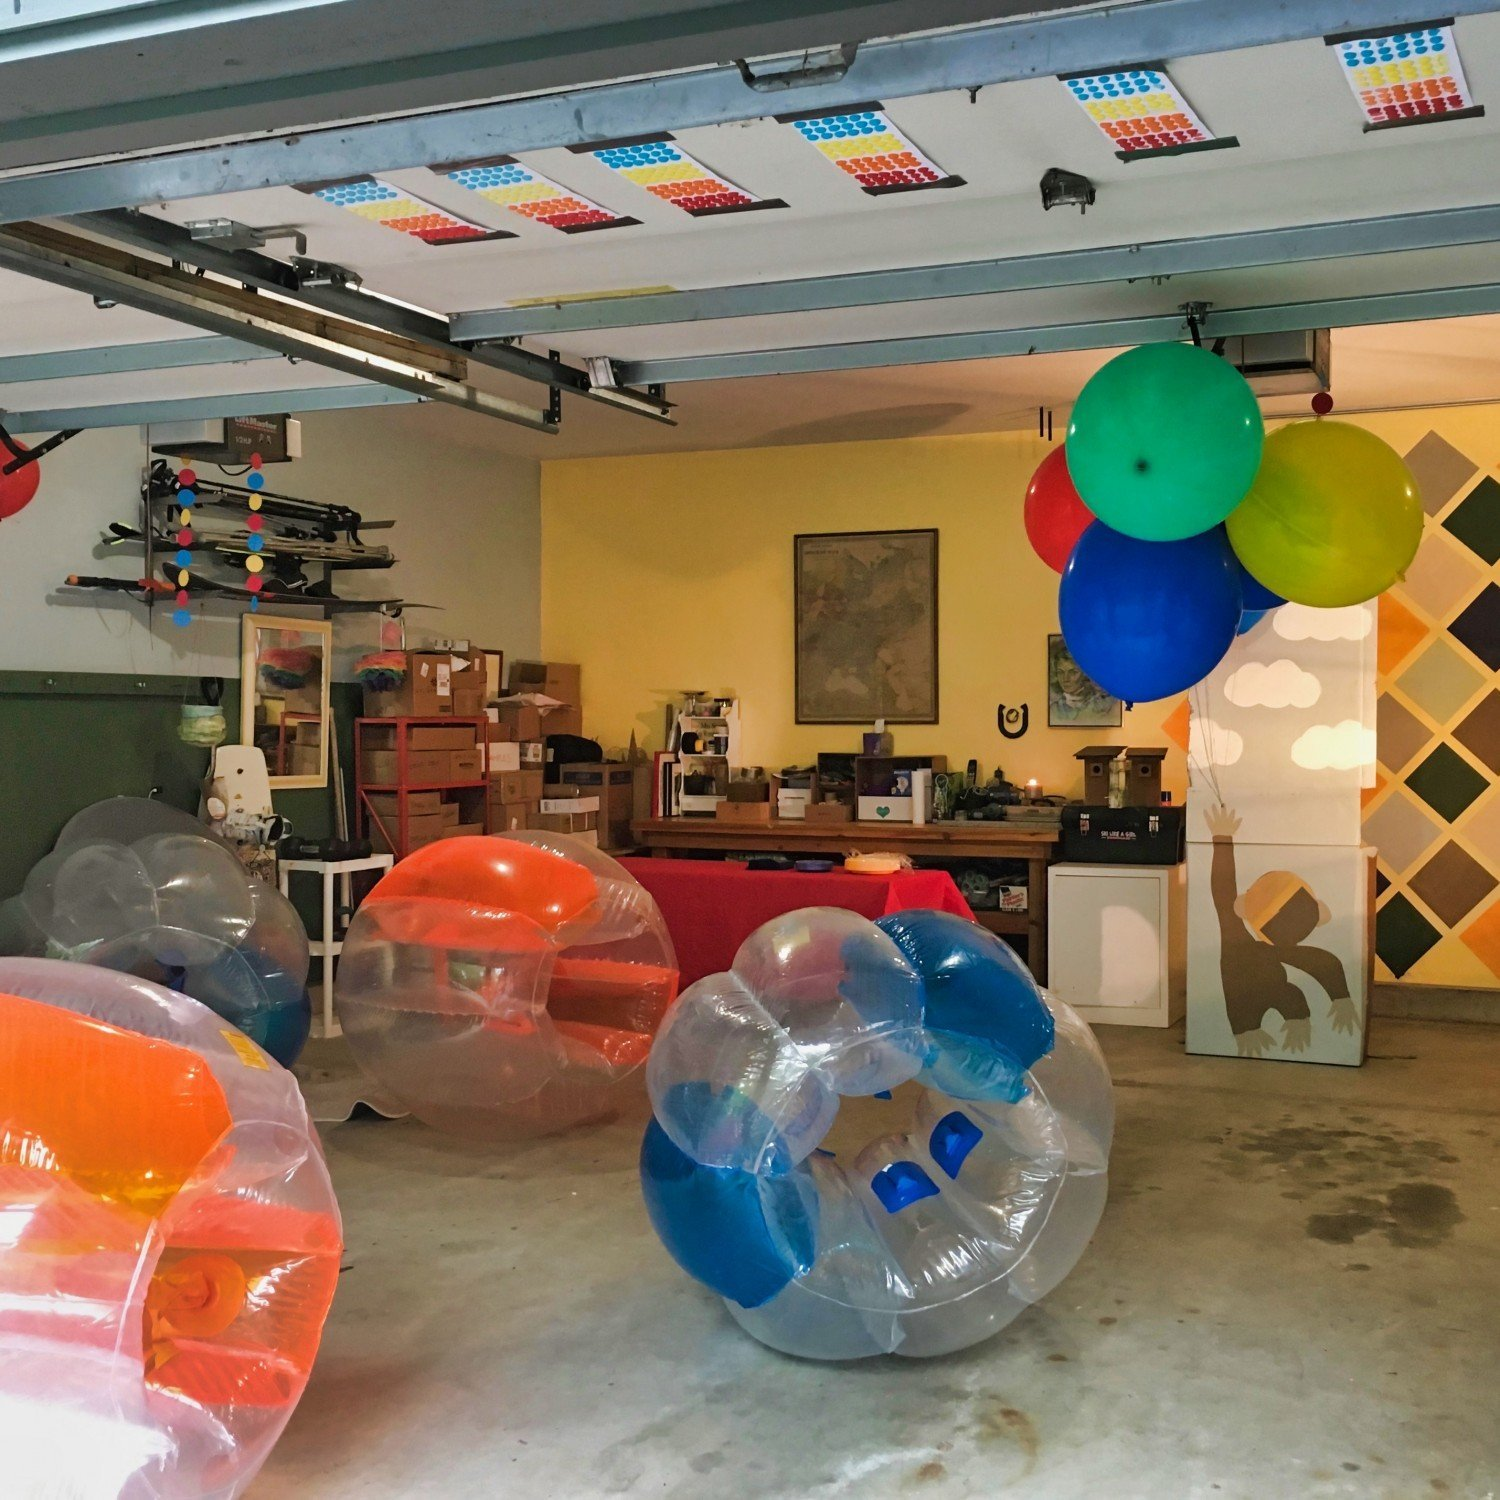 garage filled with fun birthday party activities